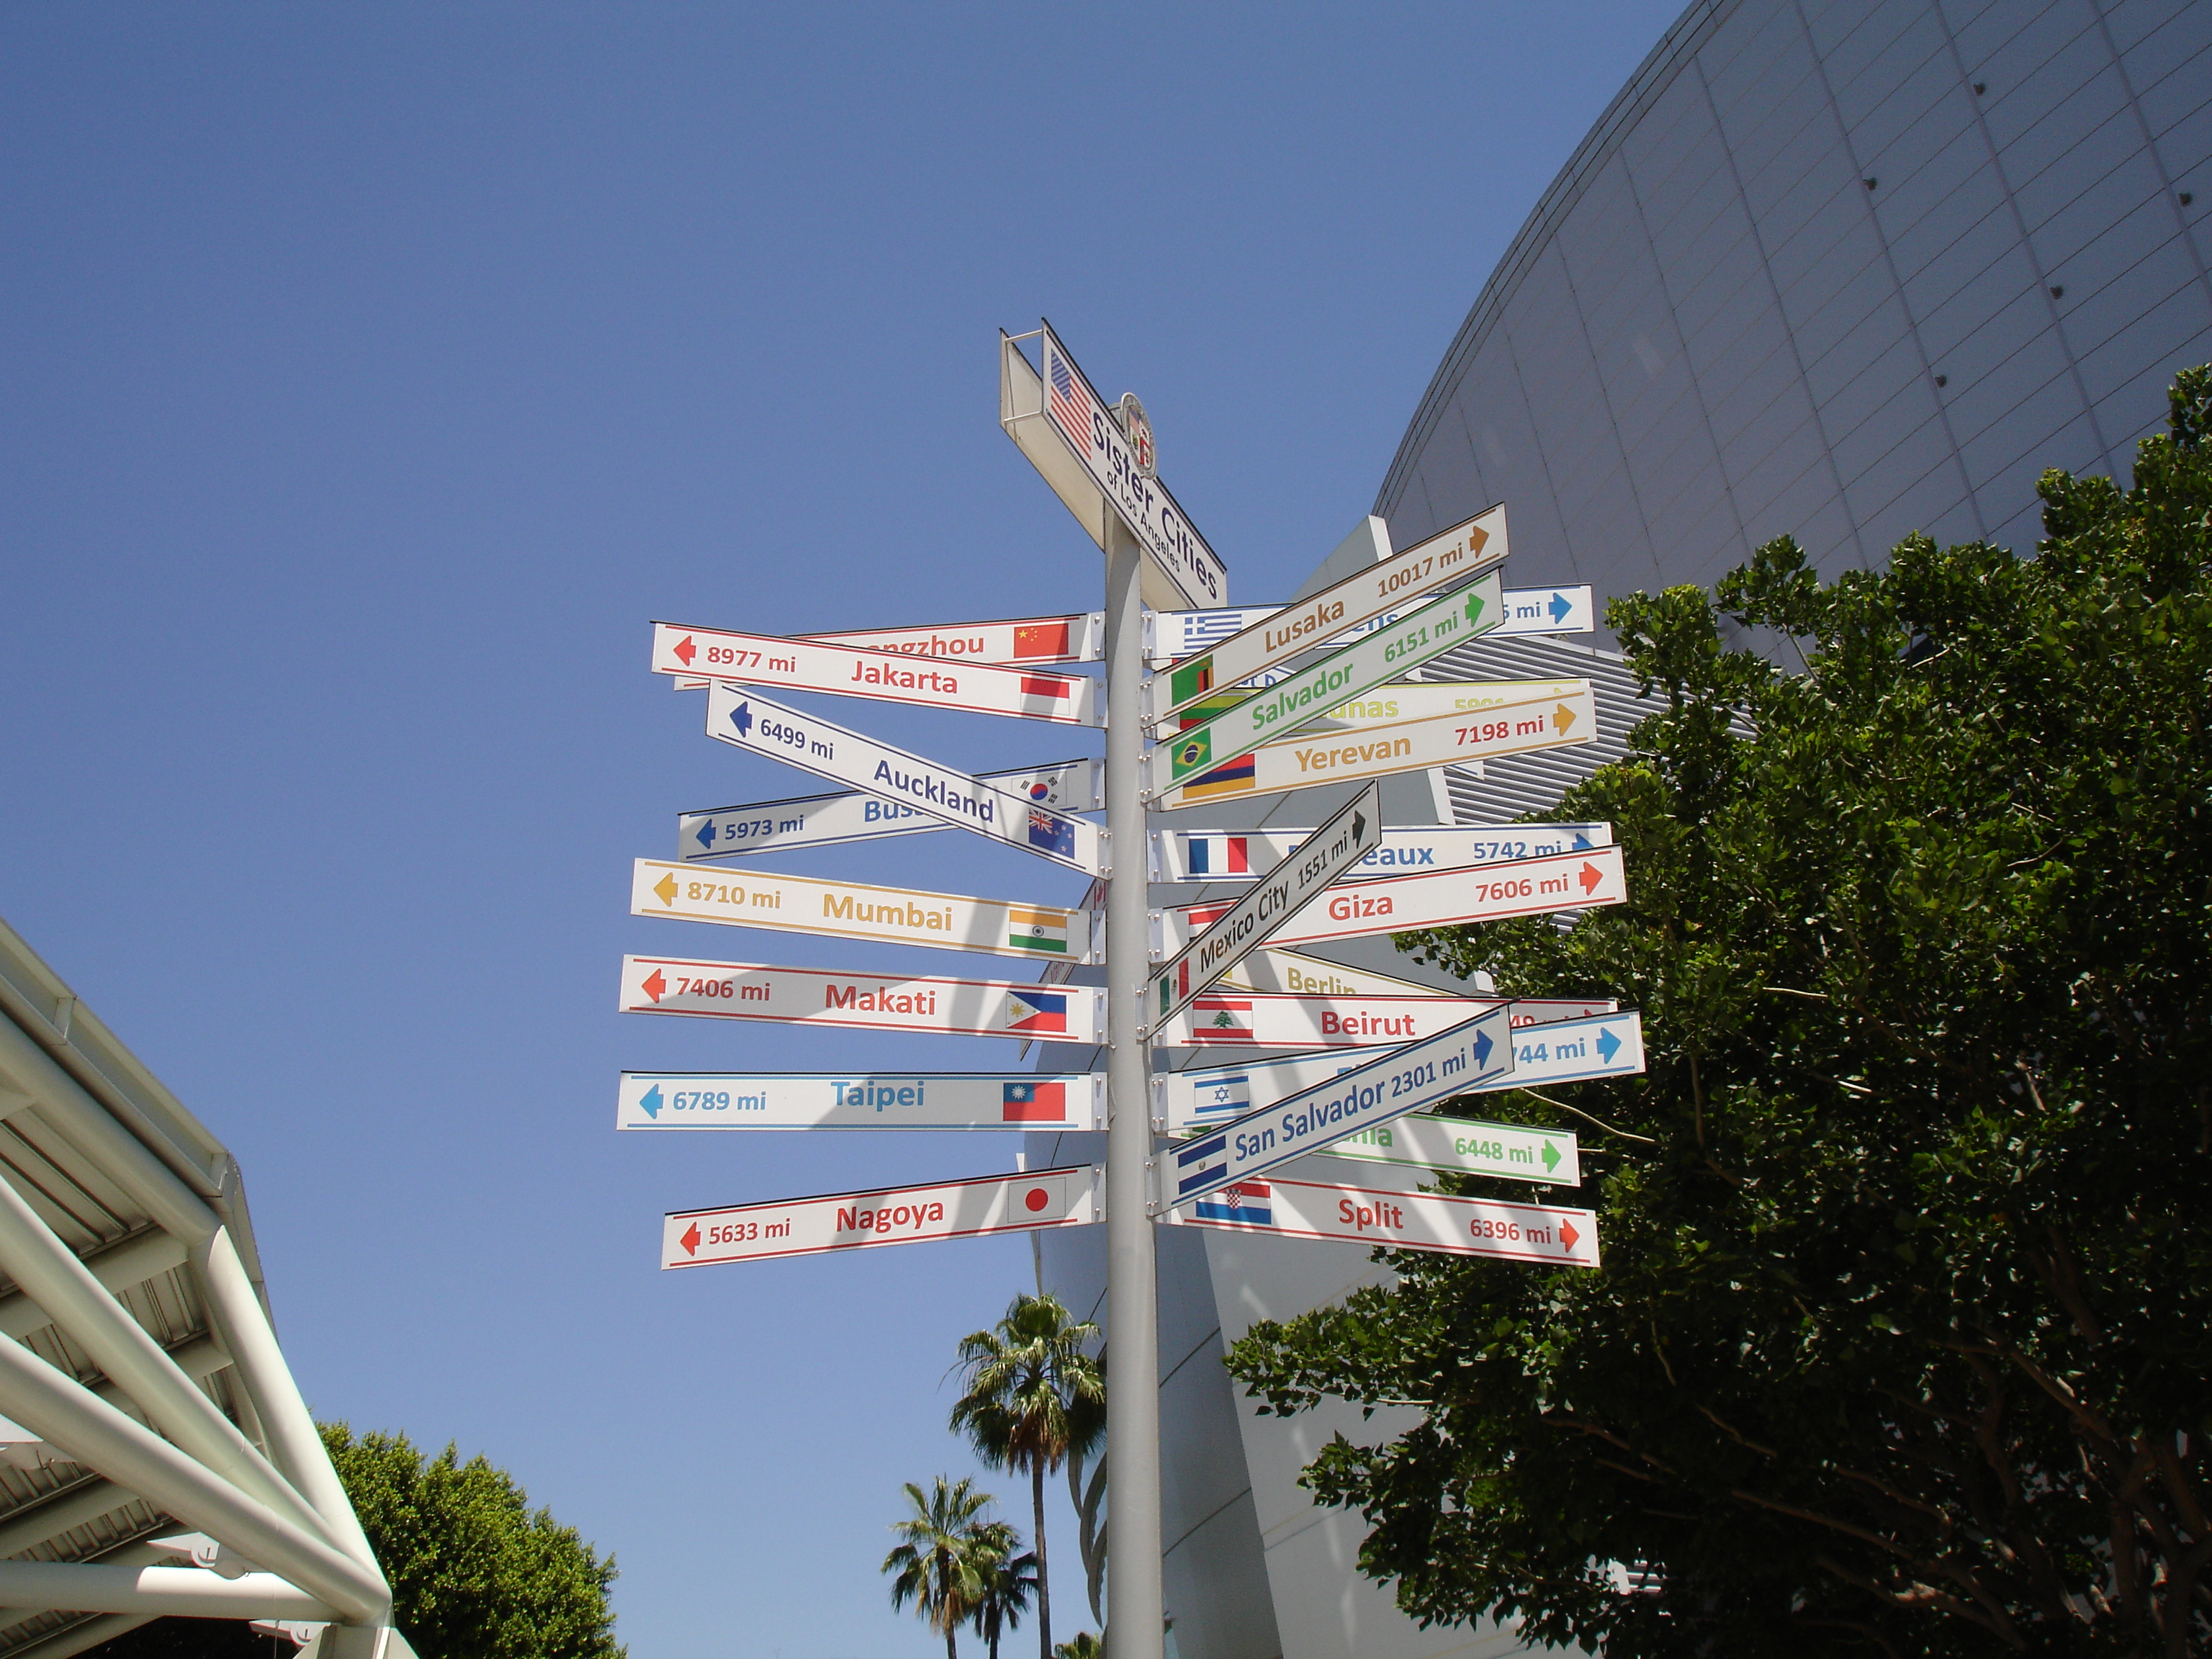 City Of Los Angeles Organizational Chart: Los Angeles Sister Cities sign 2014-05-14.JPG - Wikimedia Commons,Chart